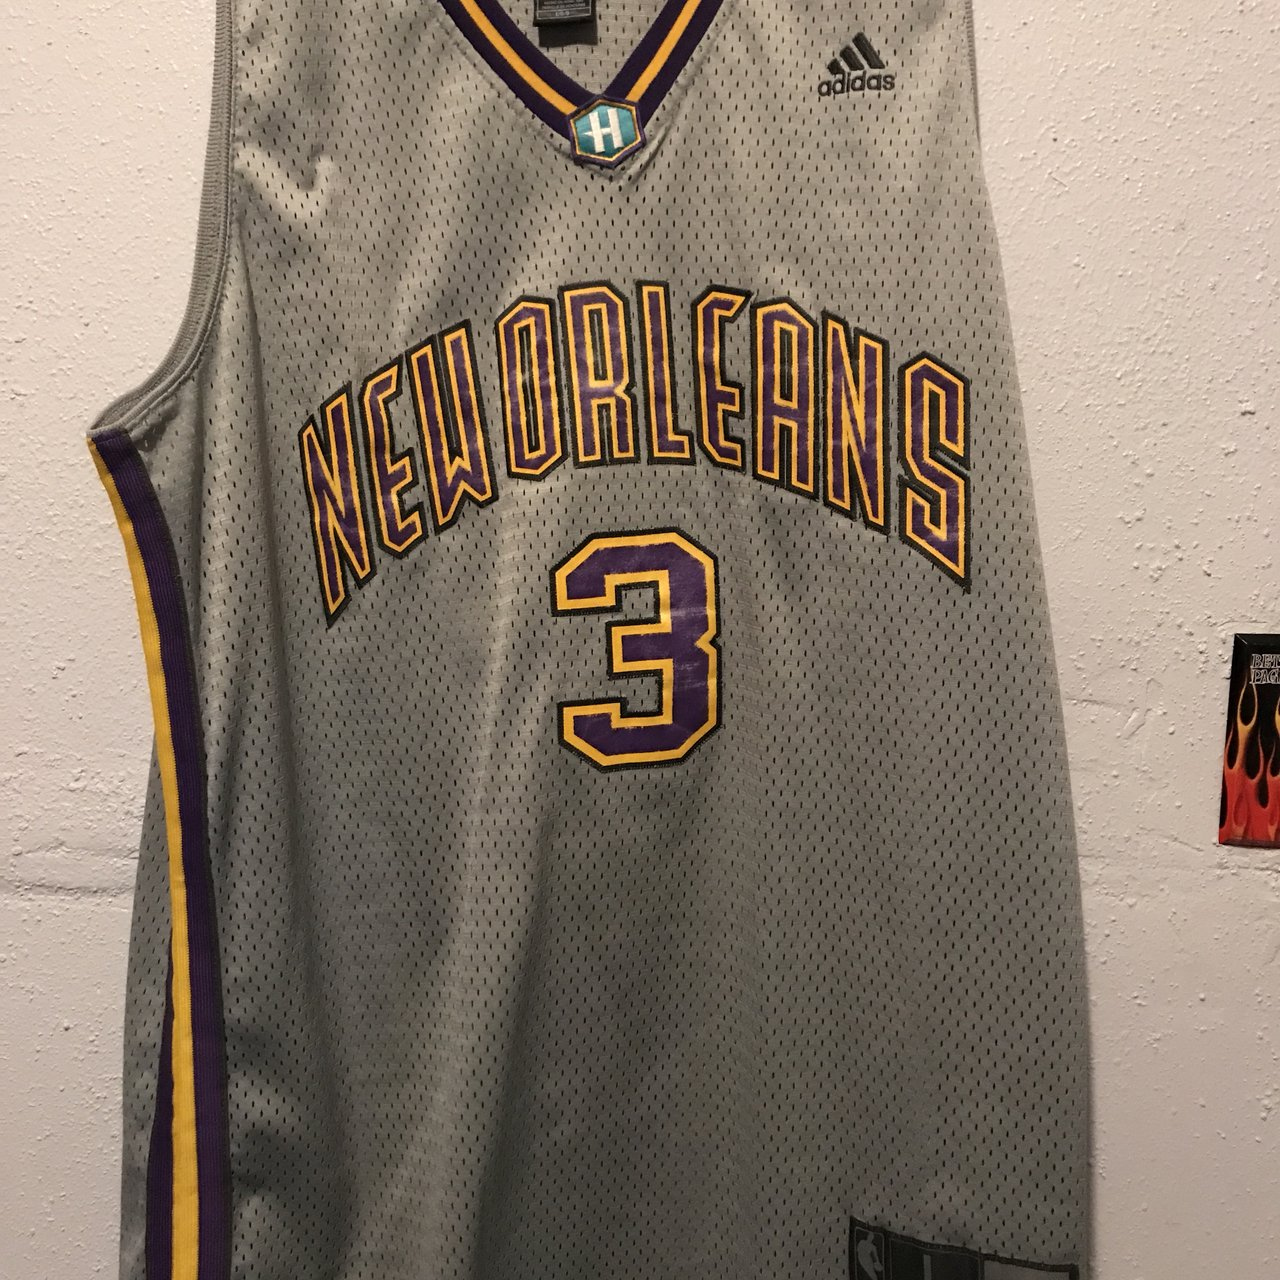 cc74785d9 Adidas Chris Paul Vintage New Orleans Hornets Jersey Men s - Depop